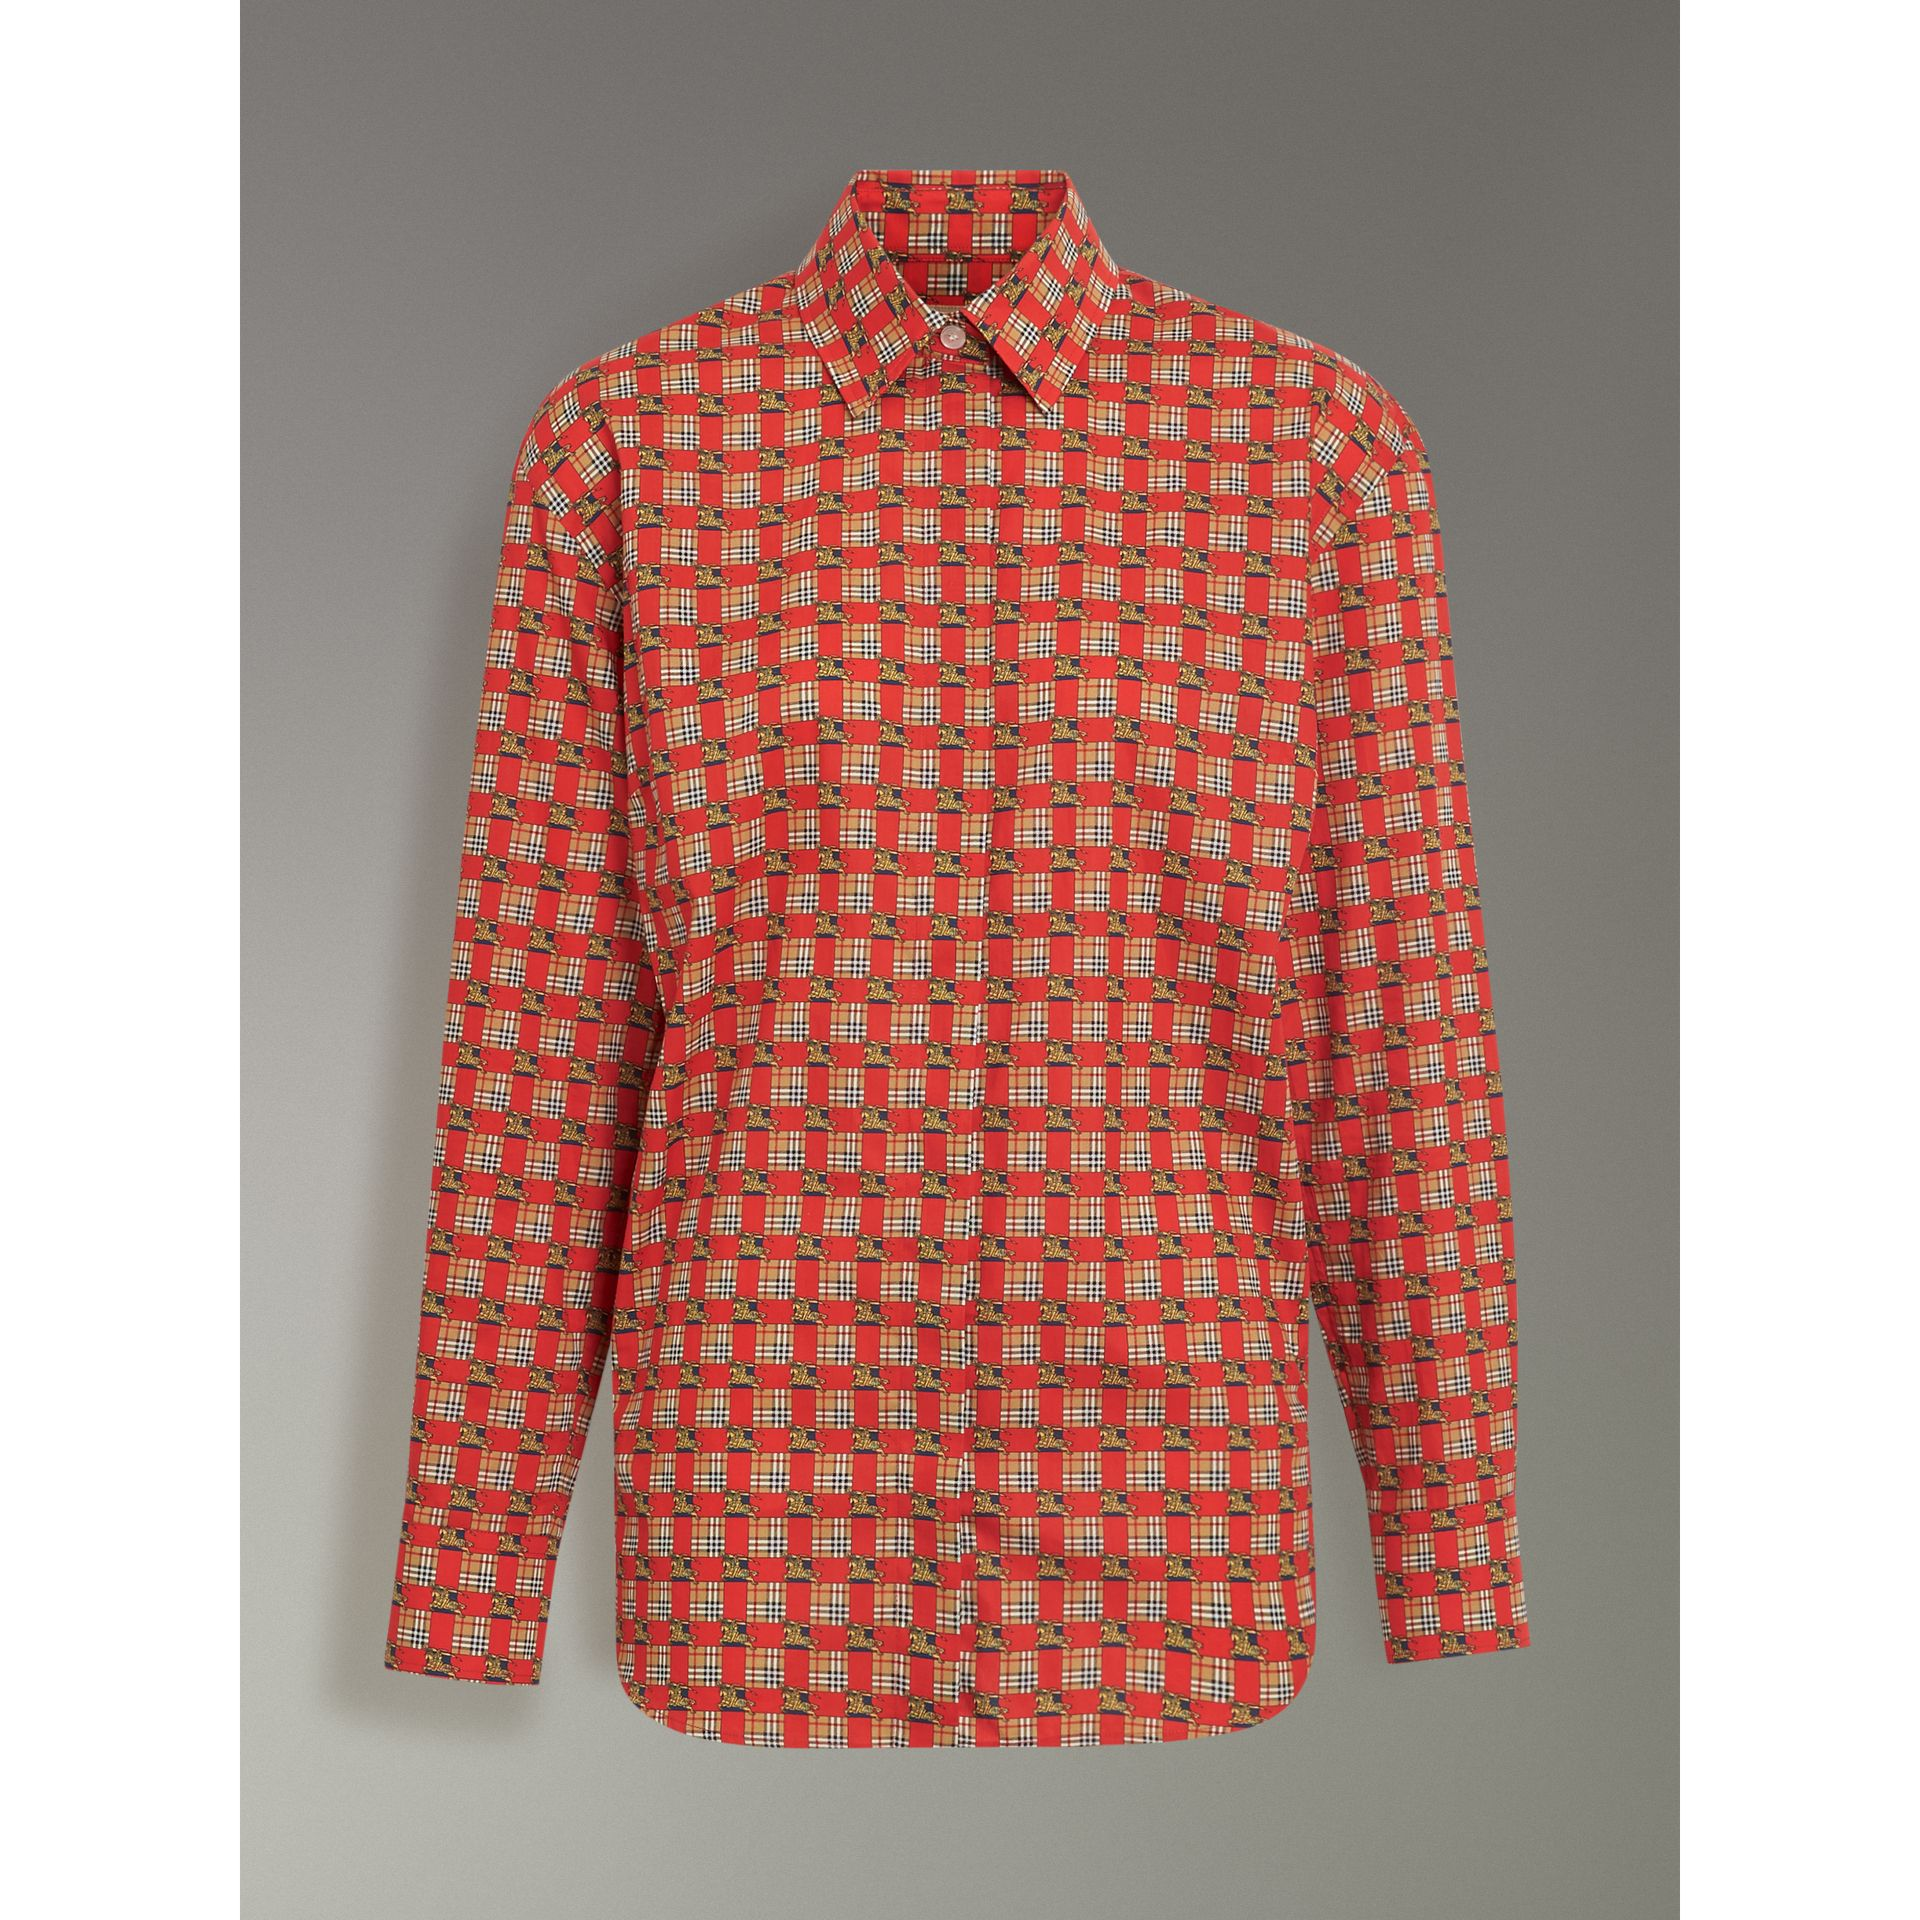 Tiled Archive Print Cotton Shirt in Bright Red - Women | Burberry - gallery image 3